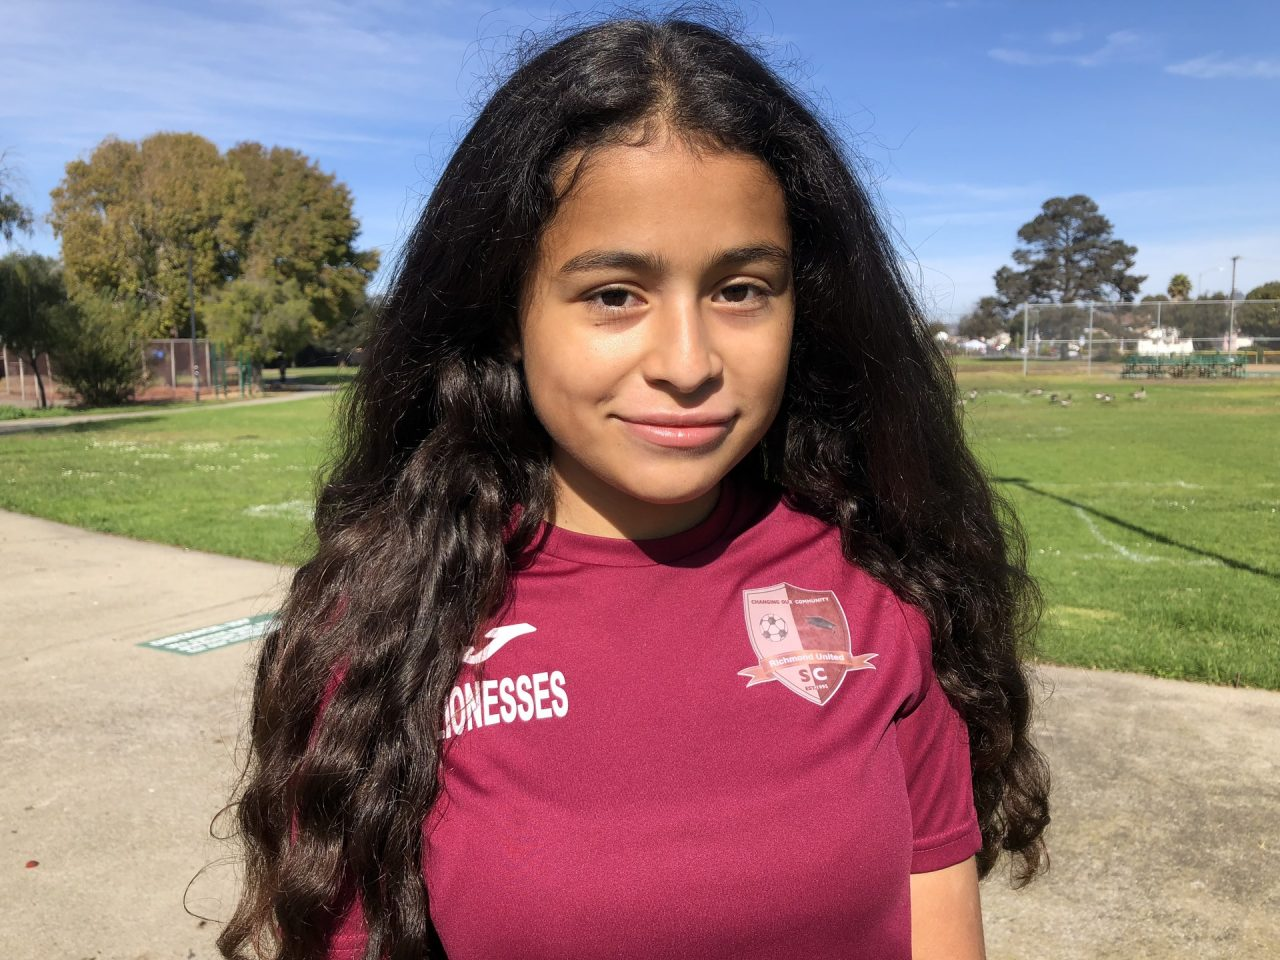 """Crista Ramos, 14, stands at a park in Richmond after a soccer match on Nov. 4, 2018. """"I felt like I needed to speak up... and represent all the children whose parents have TPS and could be sent back,"""" said Crista of why she is suing the federal government. Photo for CALmatters by Farida Jhabvala Romero/KQED"""